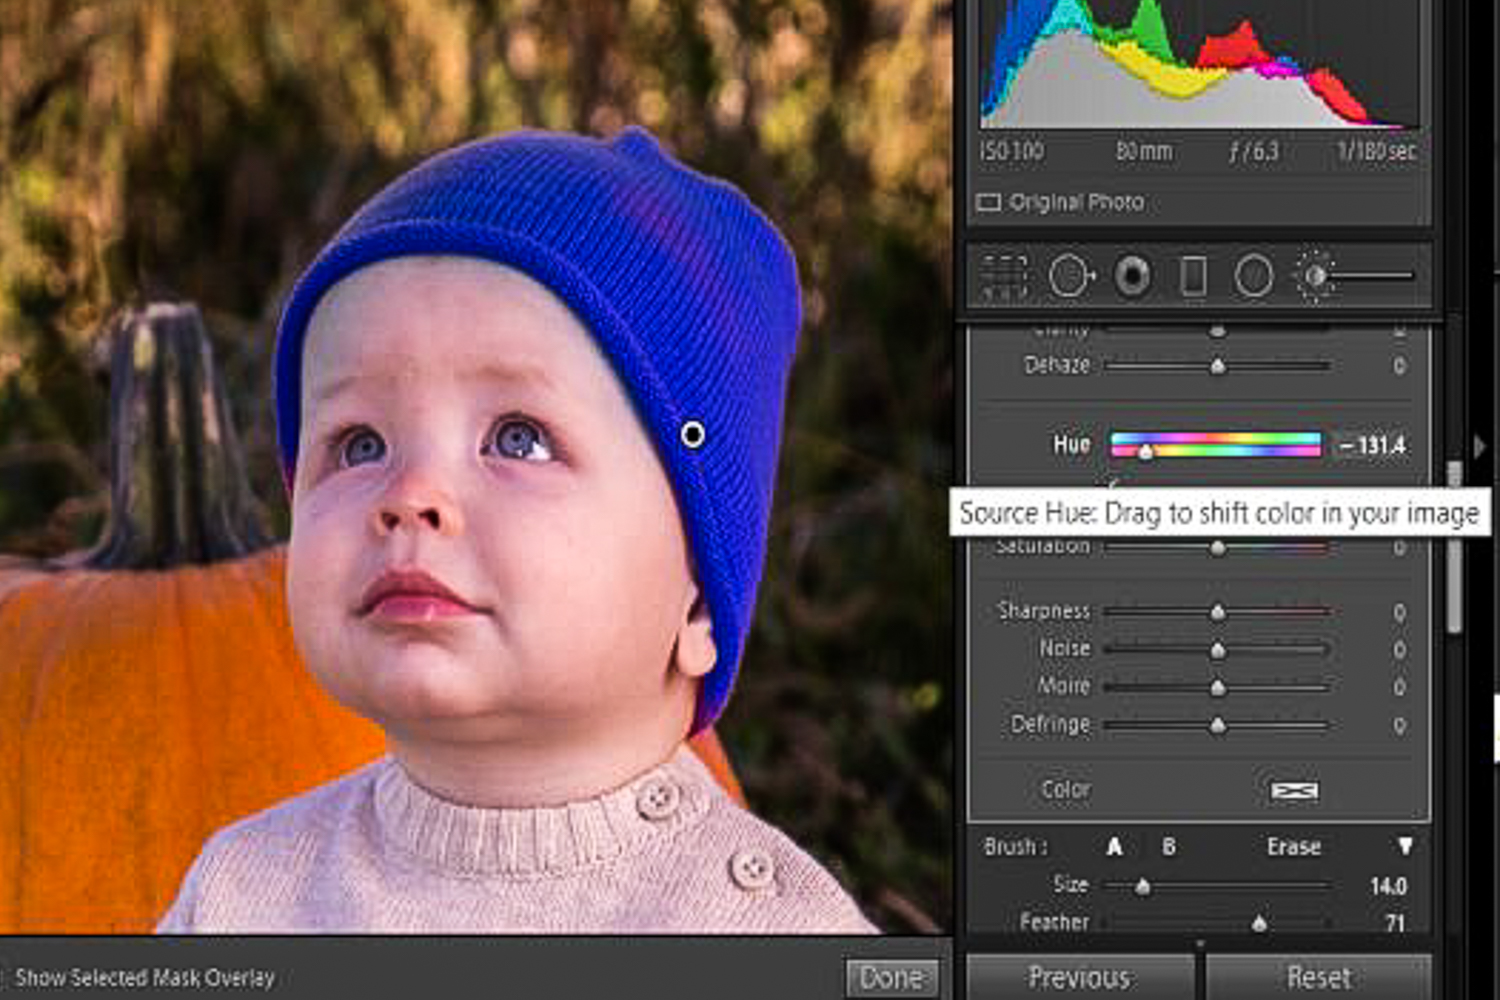 Changing colors with the Lightroom Hue Control